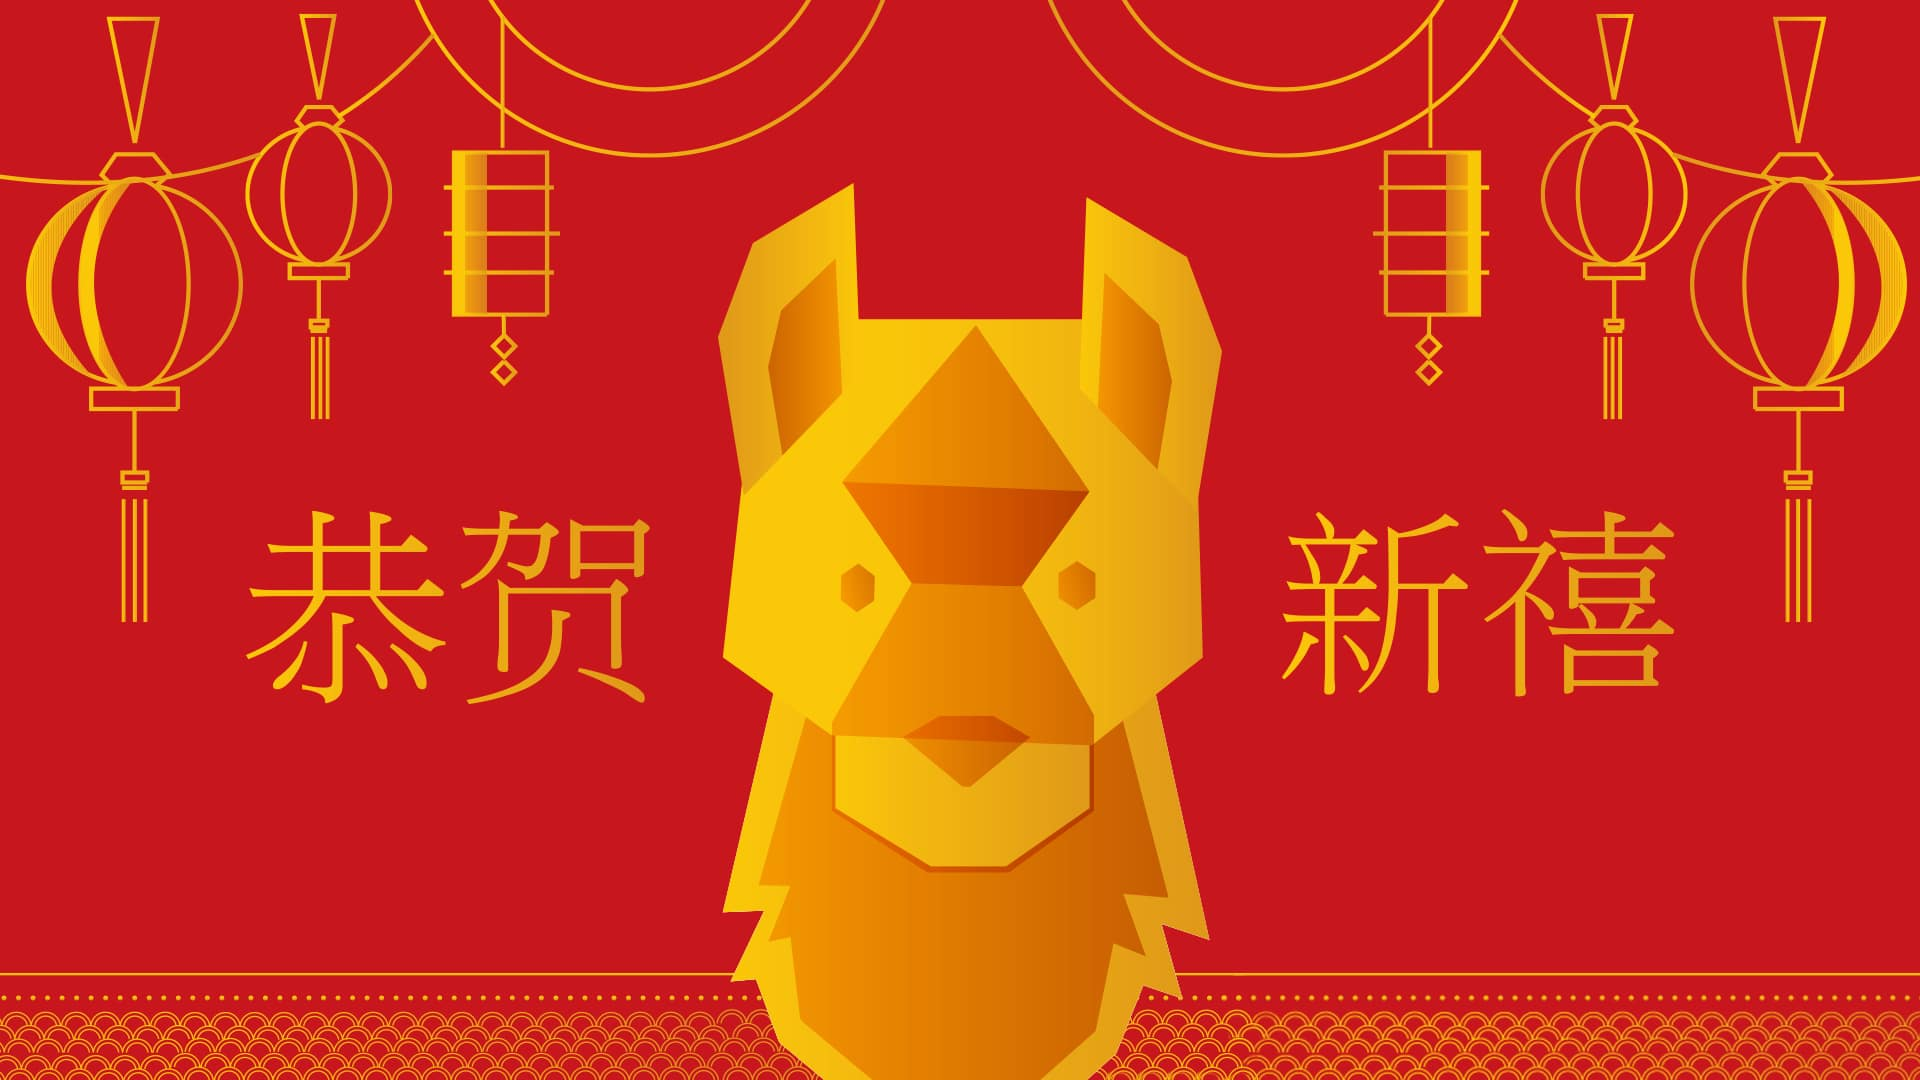 Happy Chinese New Year Greetings Cards Free Hd Images